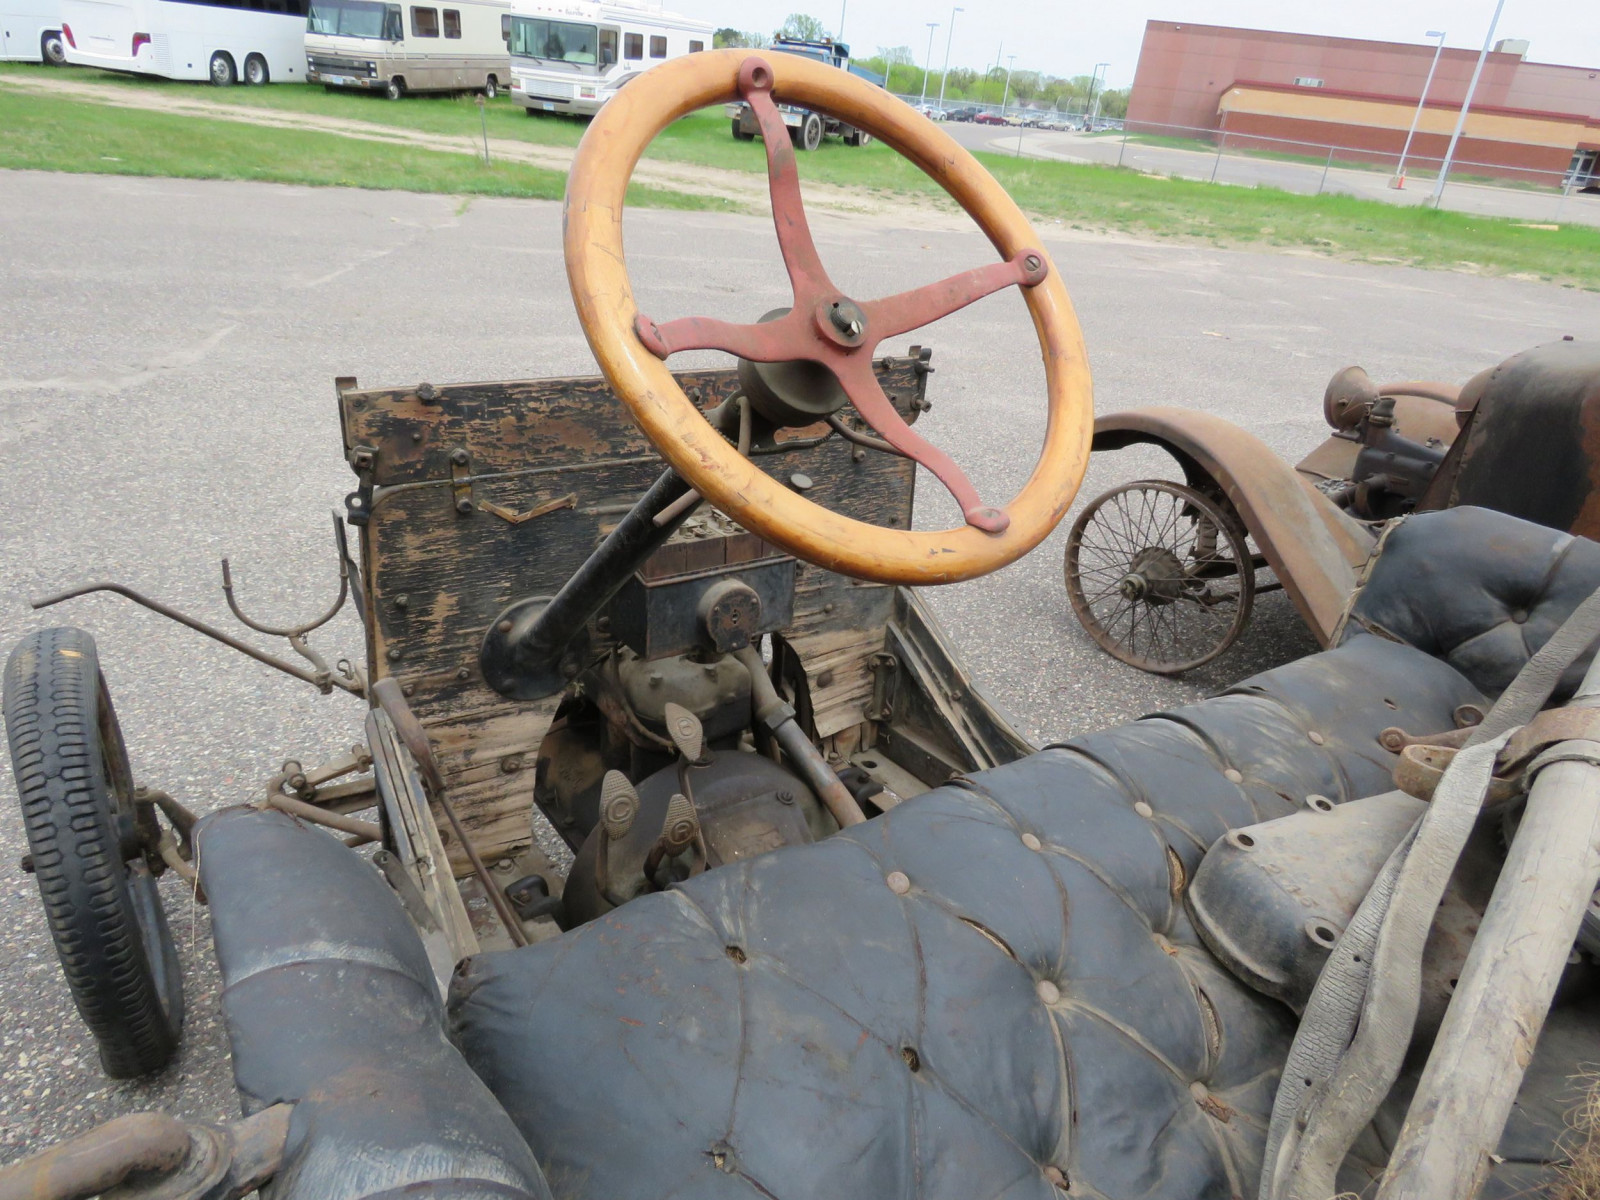 1925 Overland Touring Car for Project or Parts - Image 6